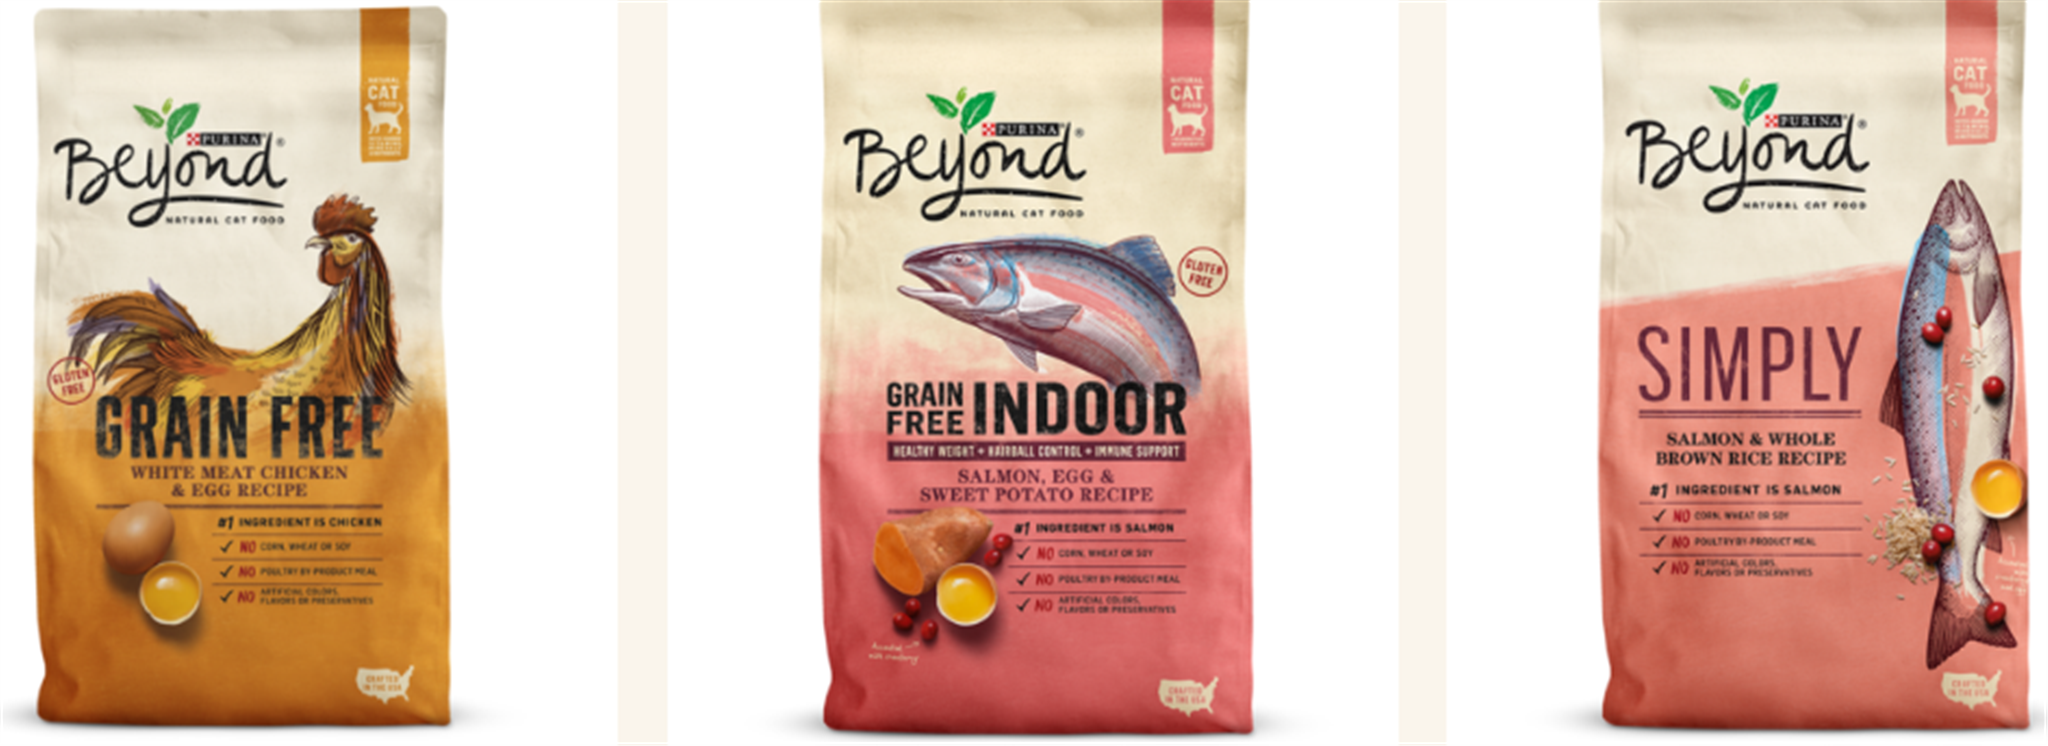 Publix – Beyond Dry Cat Food 3lb bags Only 25¢, Reg $8.49 – Hurry! Expires 1/10!